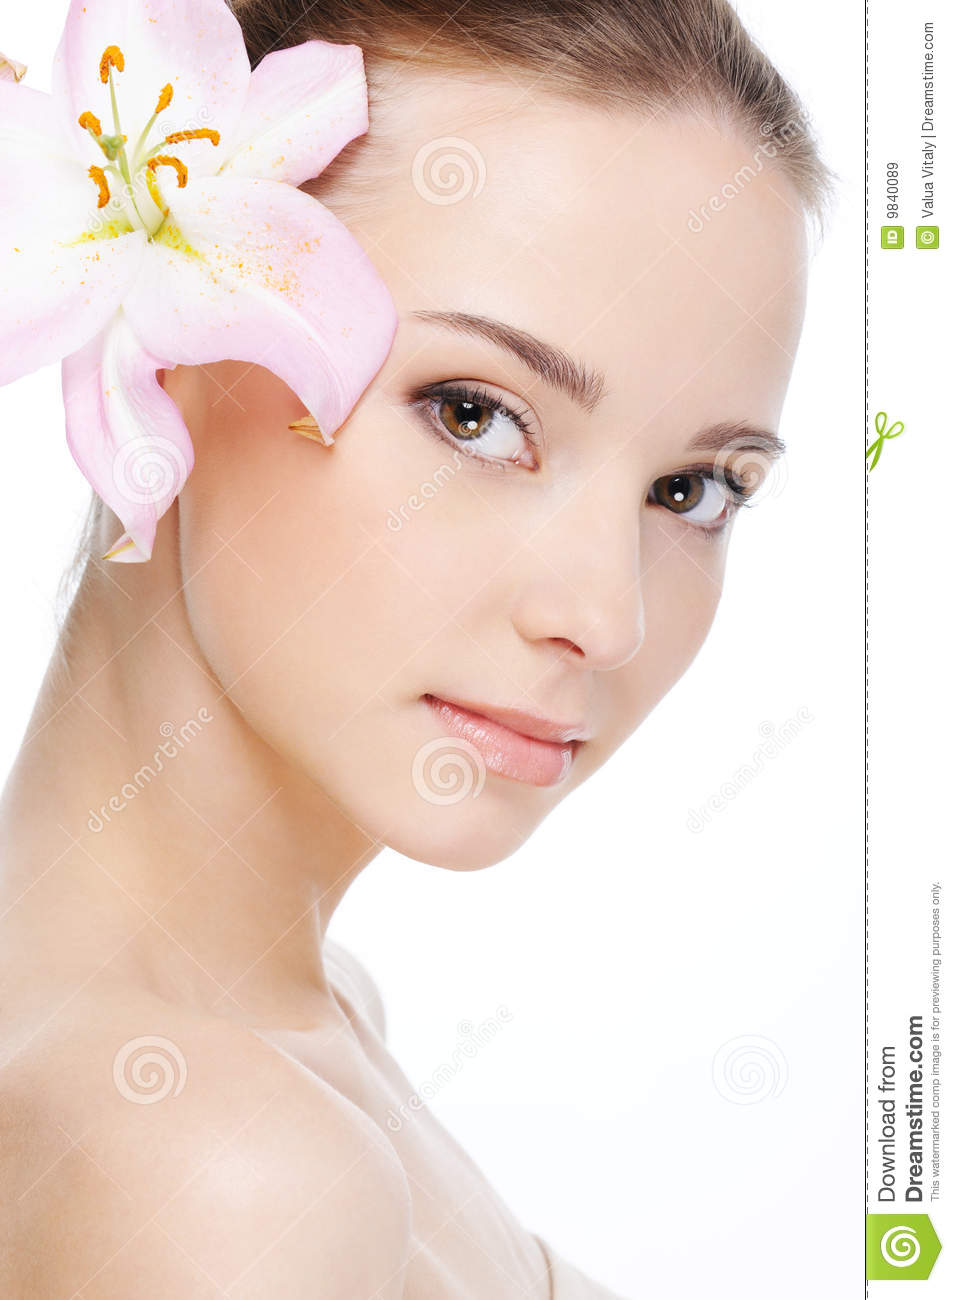 Nice female face with health skin